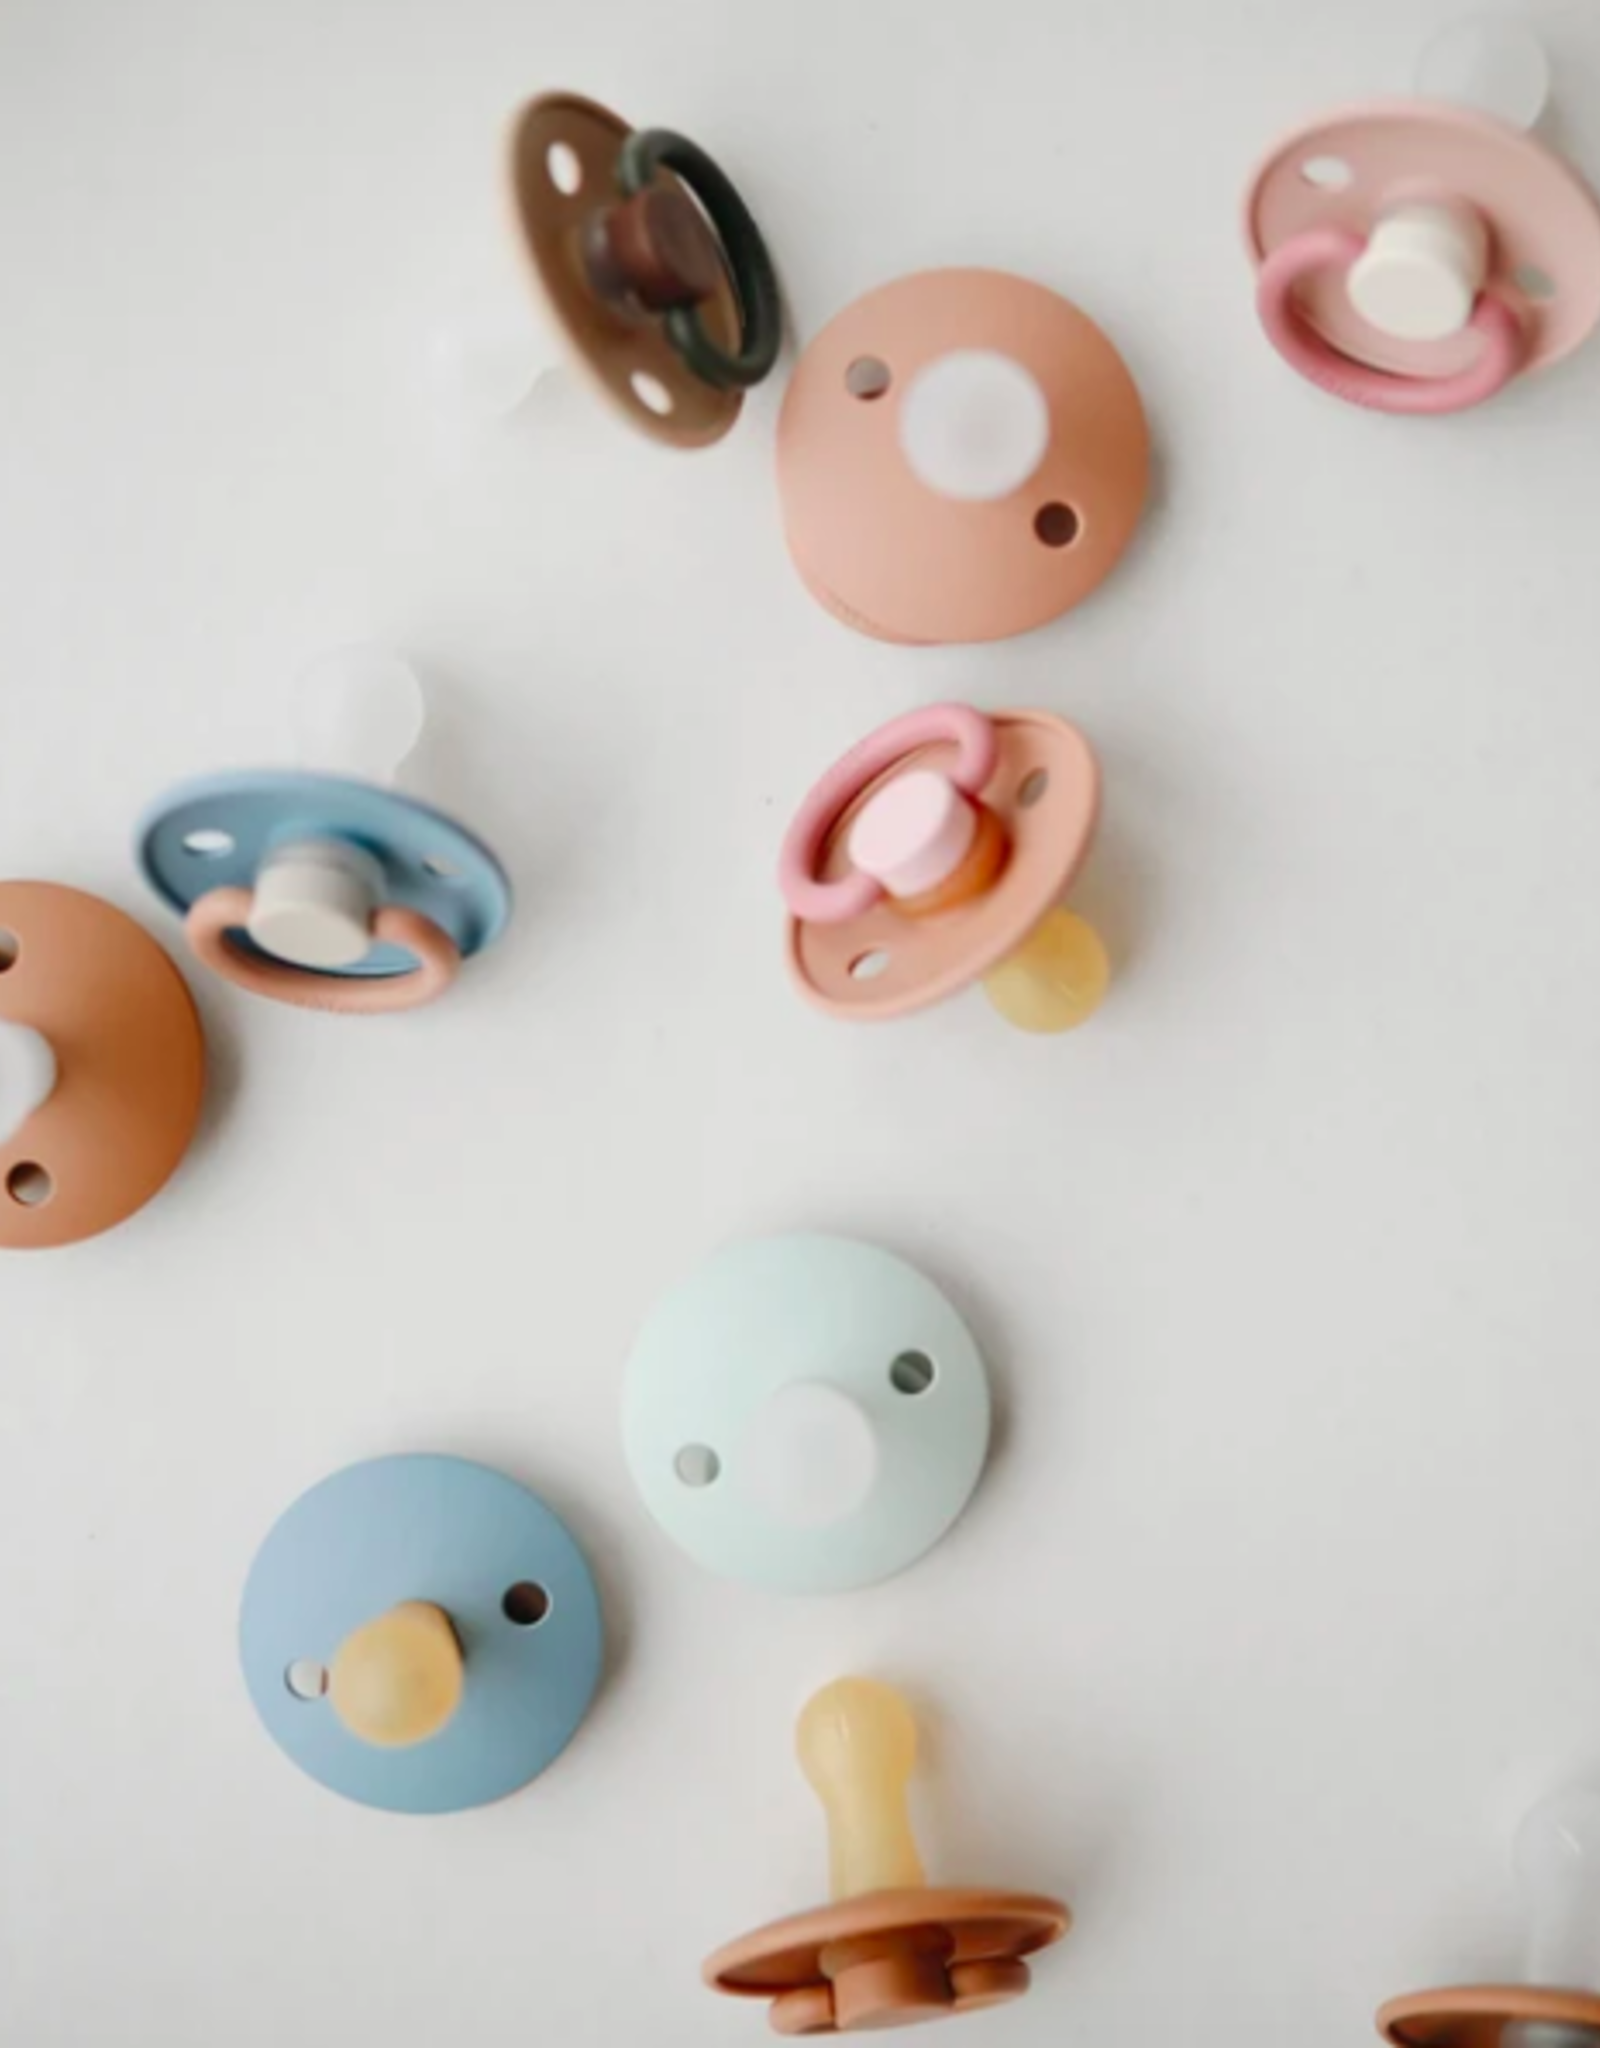 FRIGG Silicone Pacifier Safari - 0-6 Months